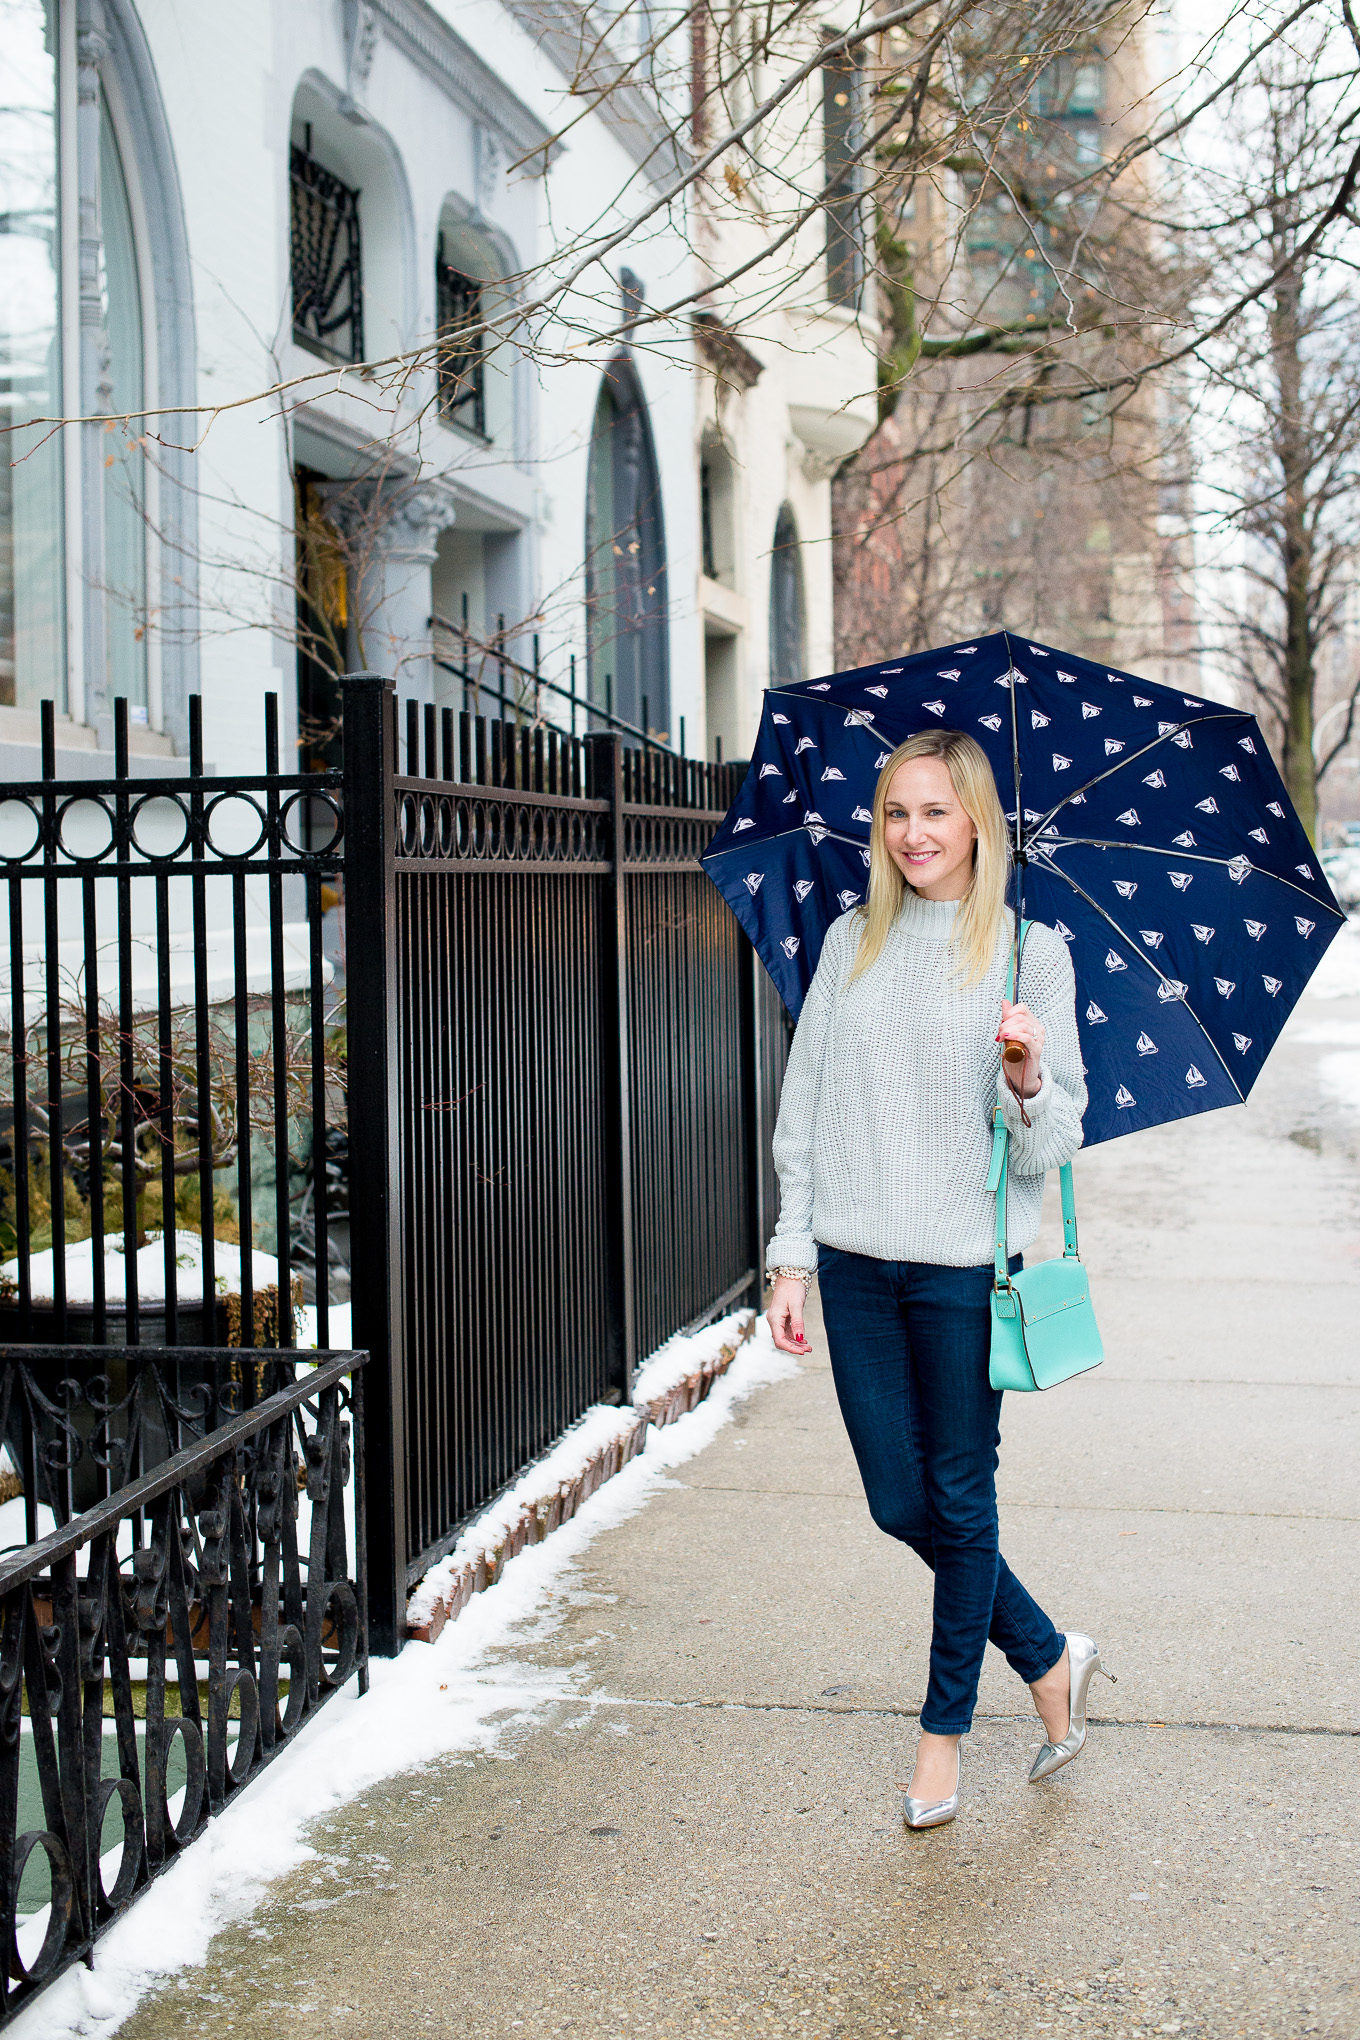 J.Crew Sailboat Umbrella-3